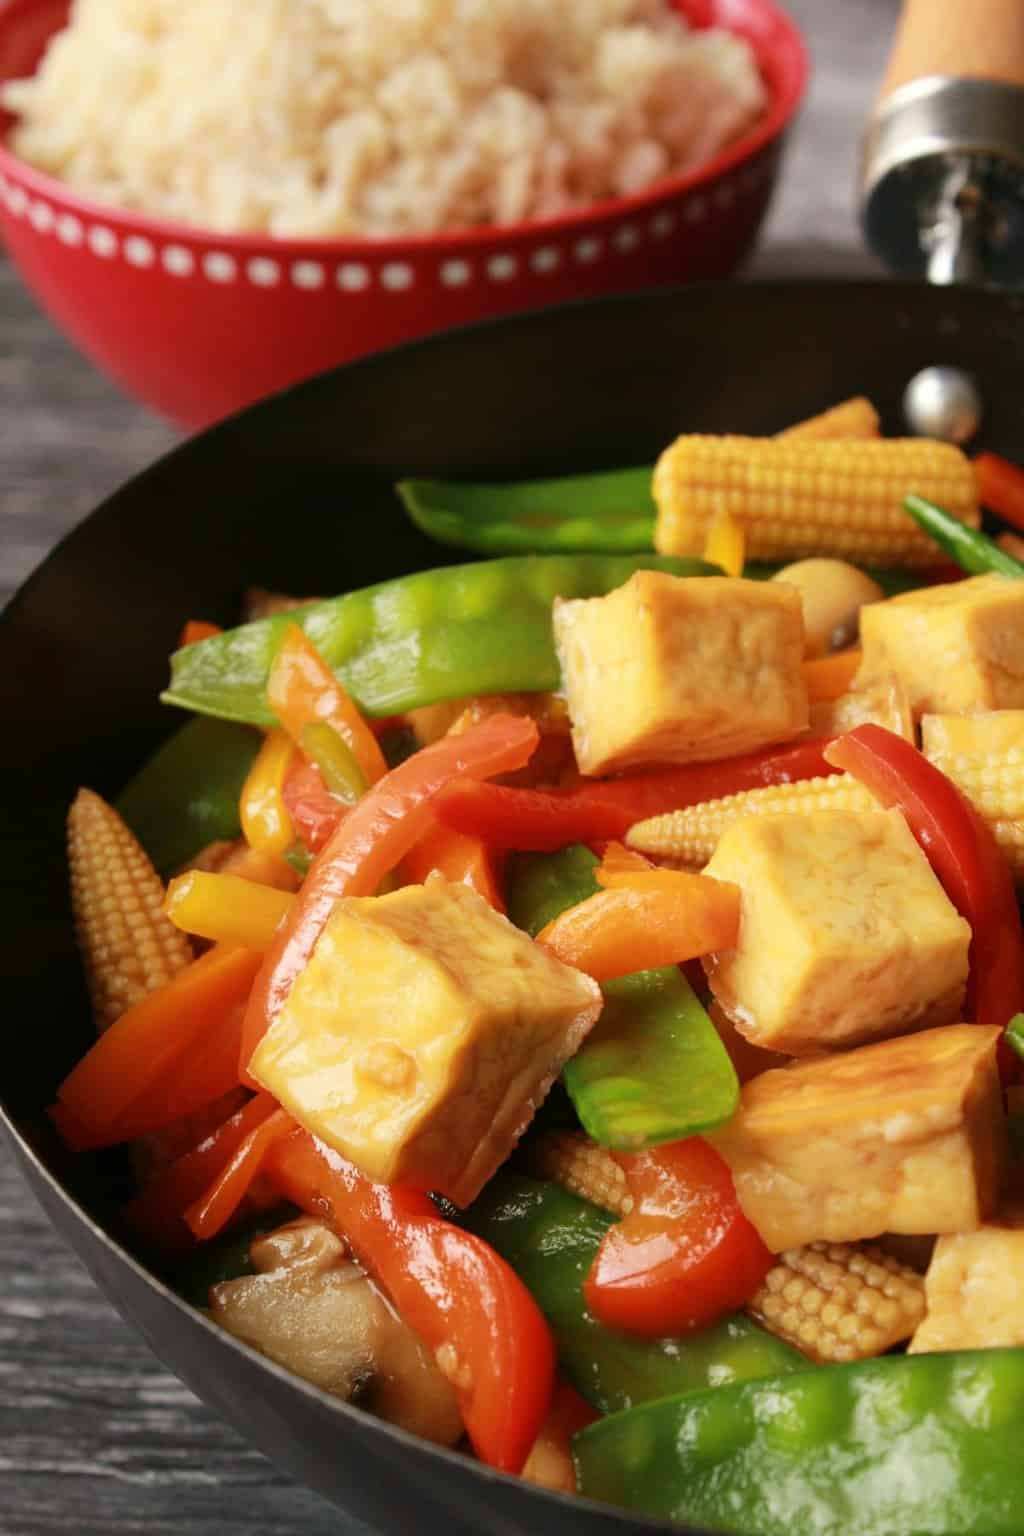 Tofu Stir Fry with Brown Rice